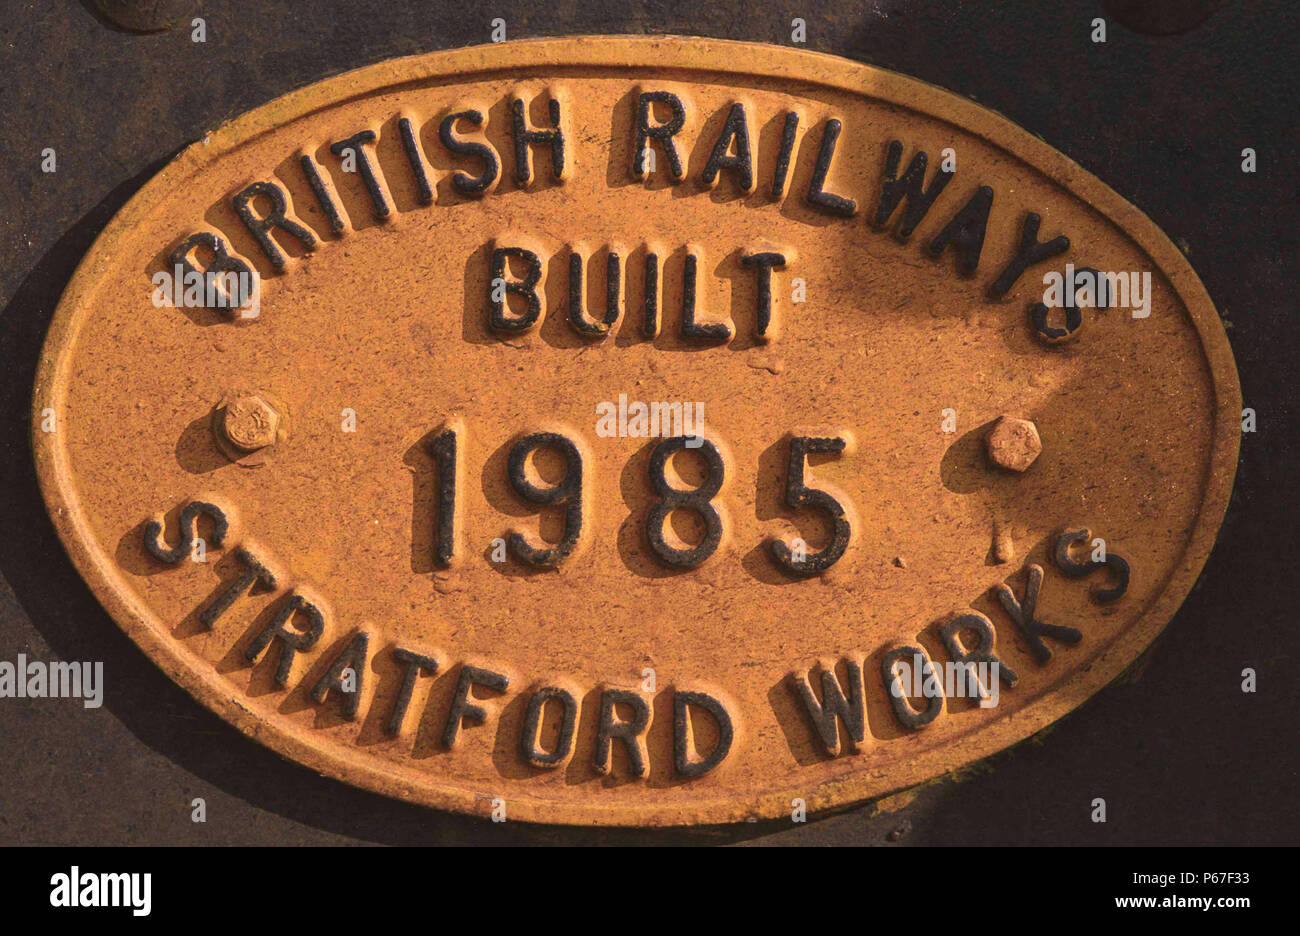 Builders plate detail. - Stock Image